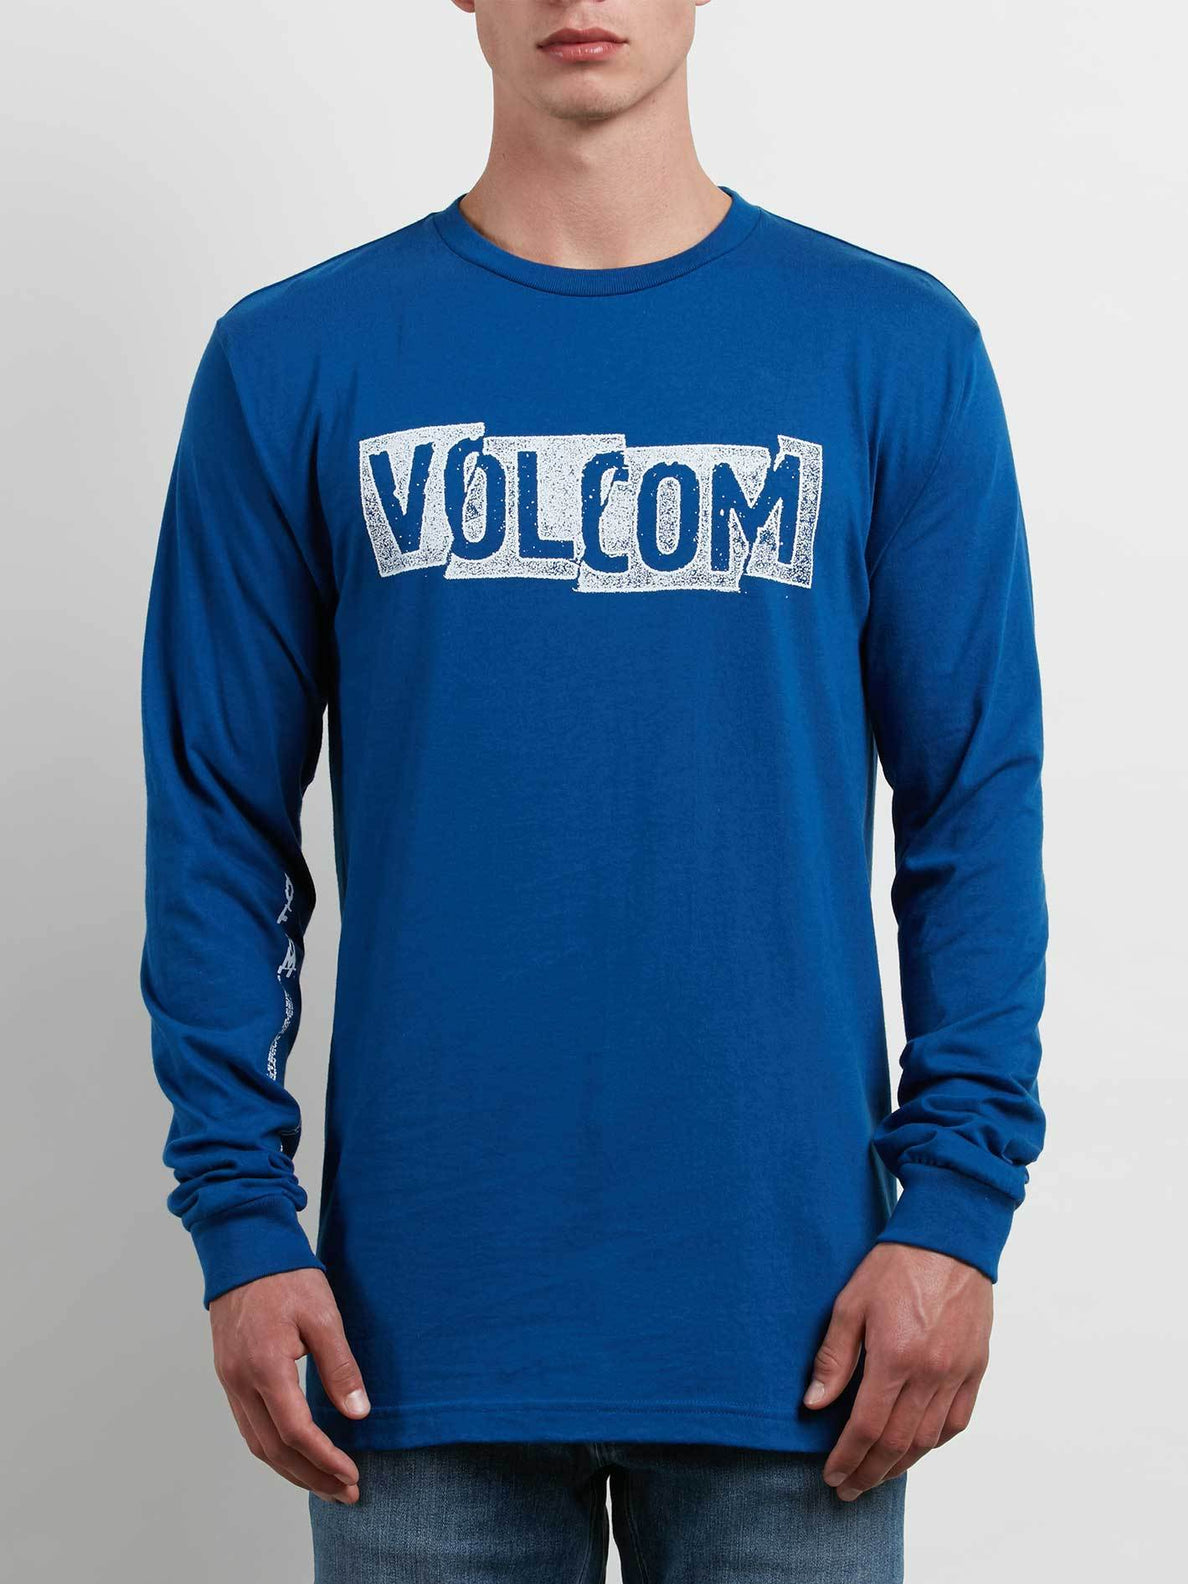 Edge Long Sleeve Tee In Camper Blue, Front View